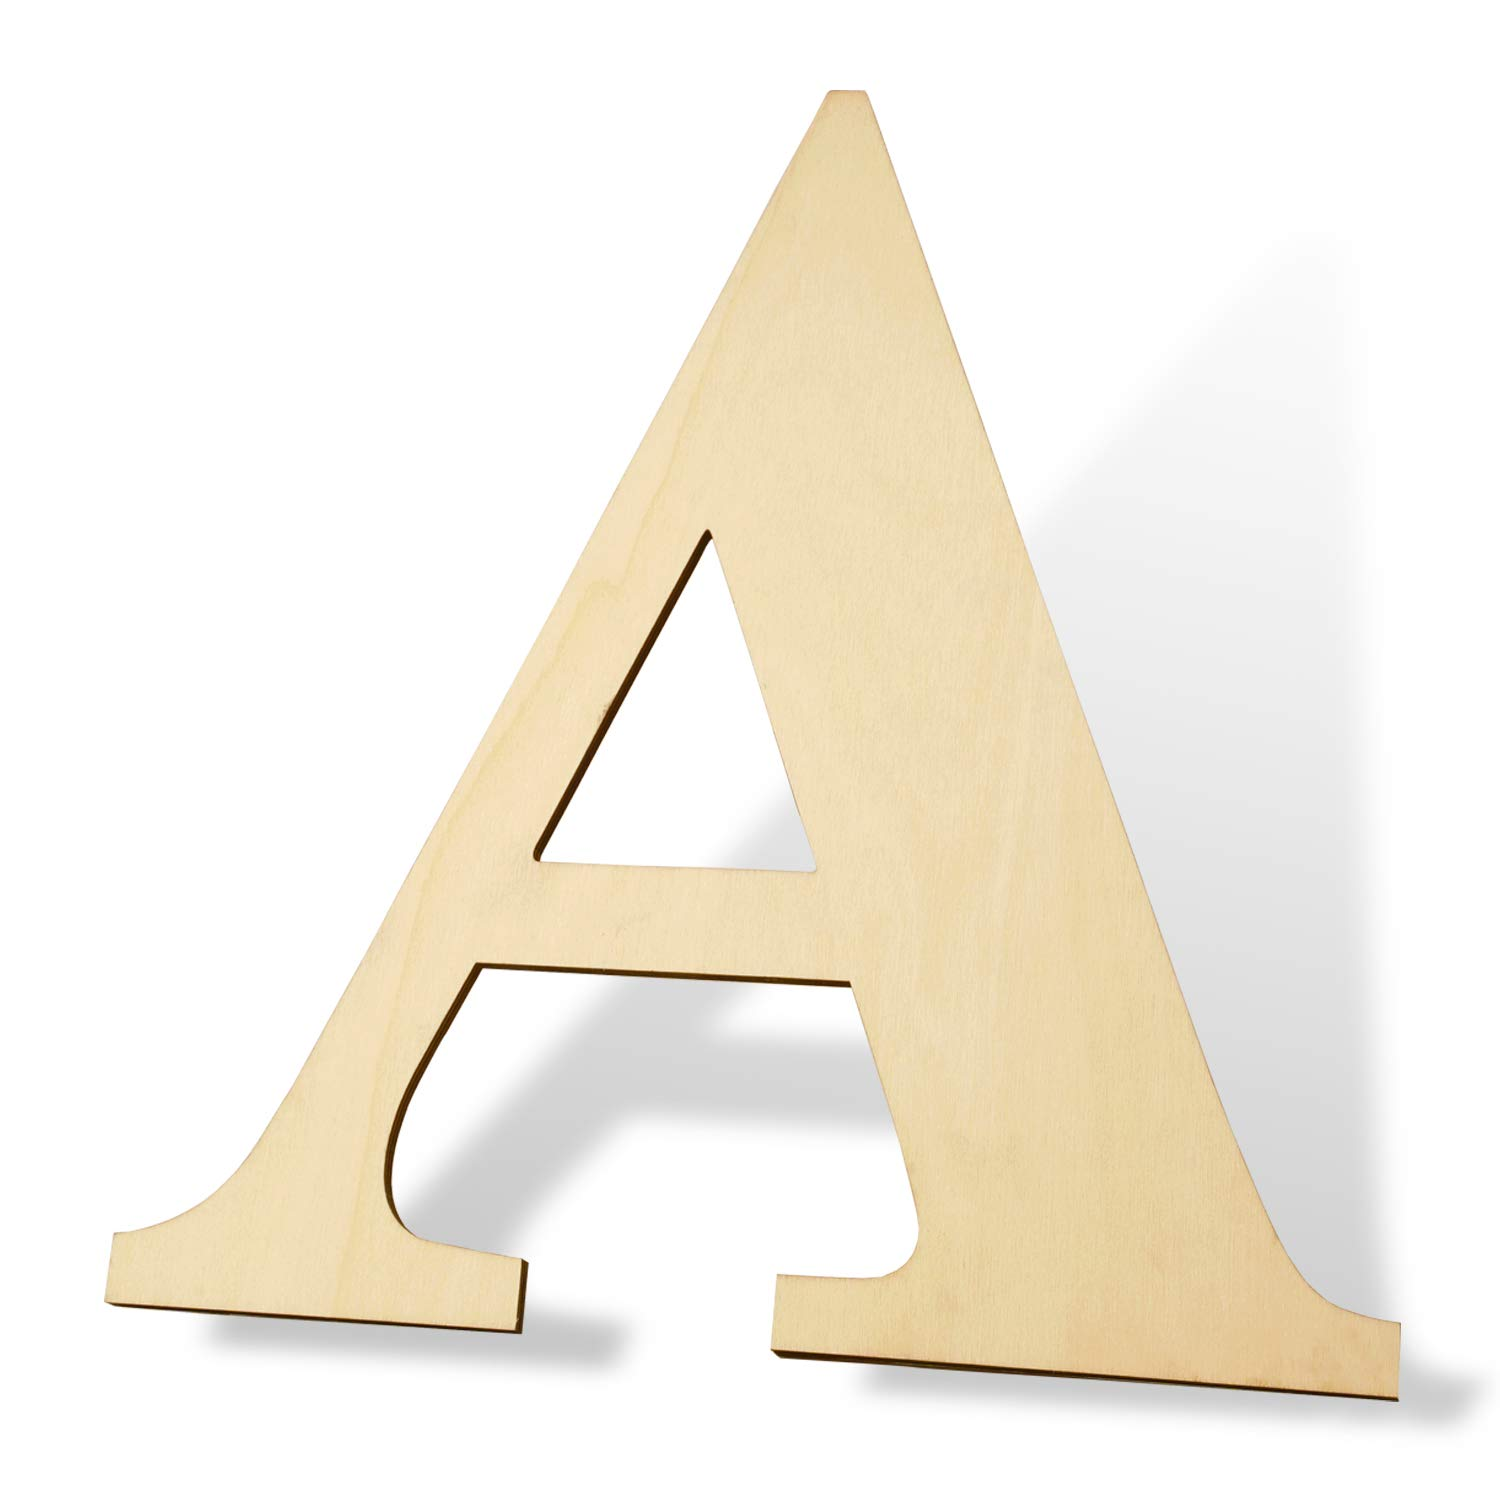 12 inch Wooden Letters A - Blank Wood Board, Wood Letters for Walls Decor, Party, DIY Craft Projects (12